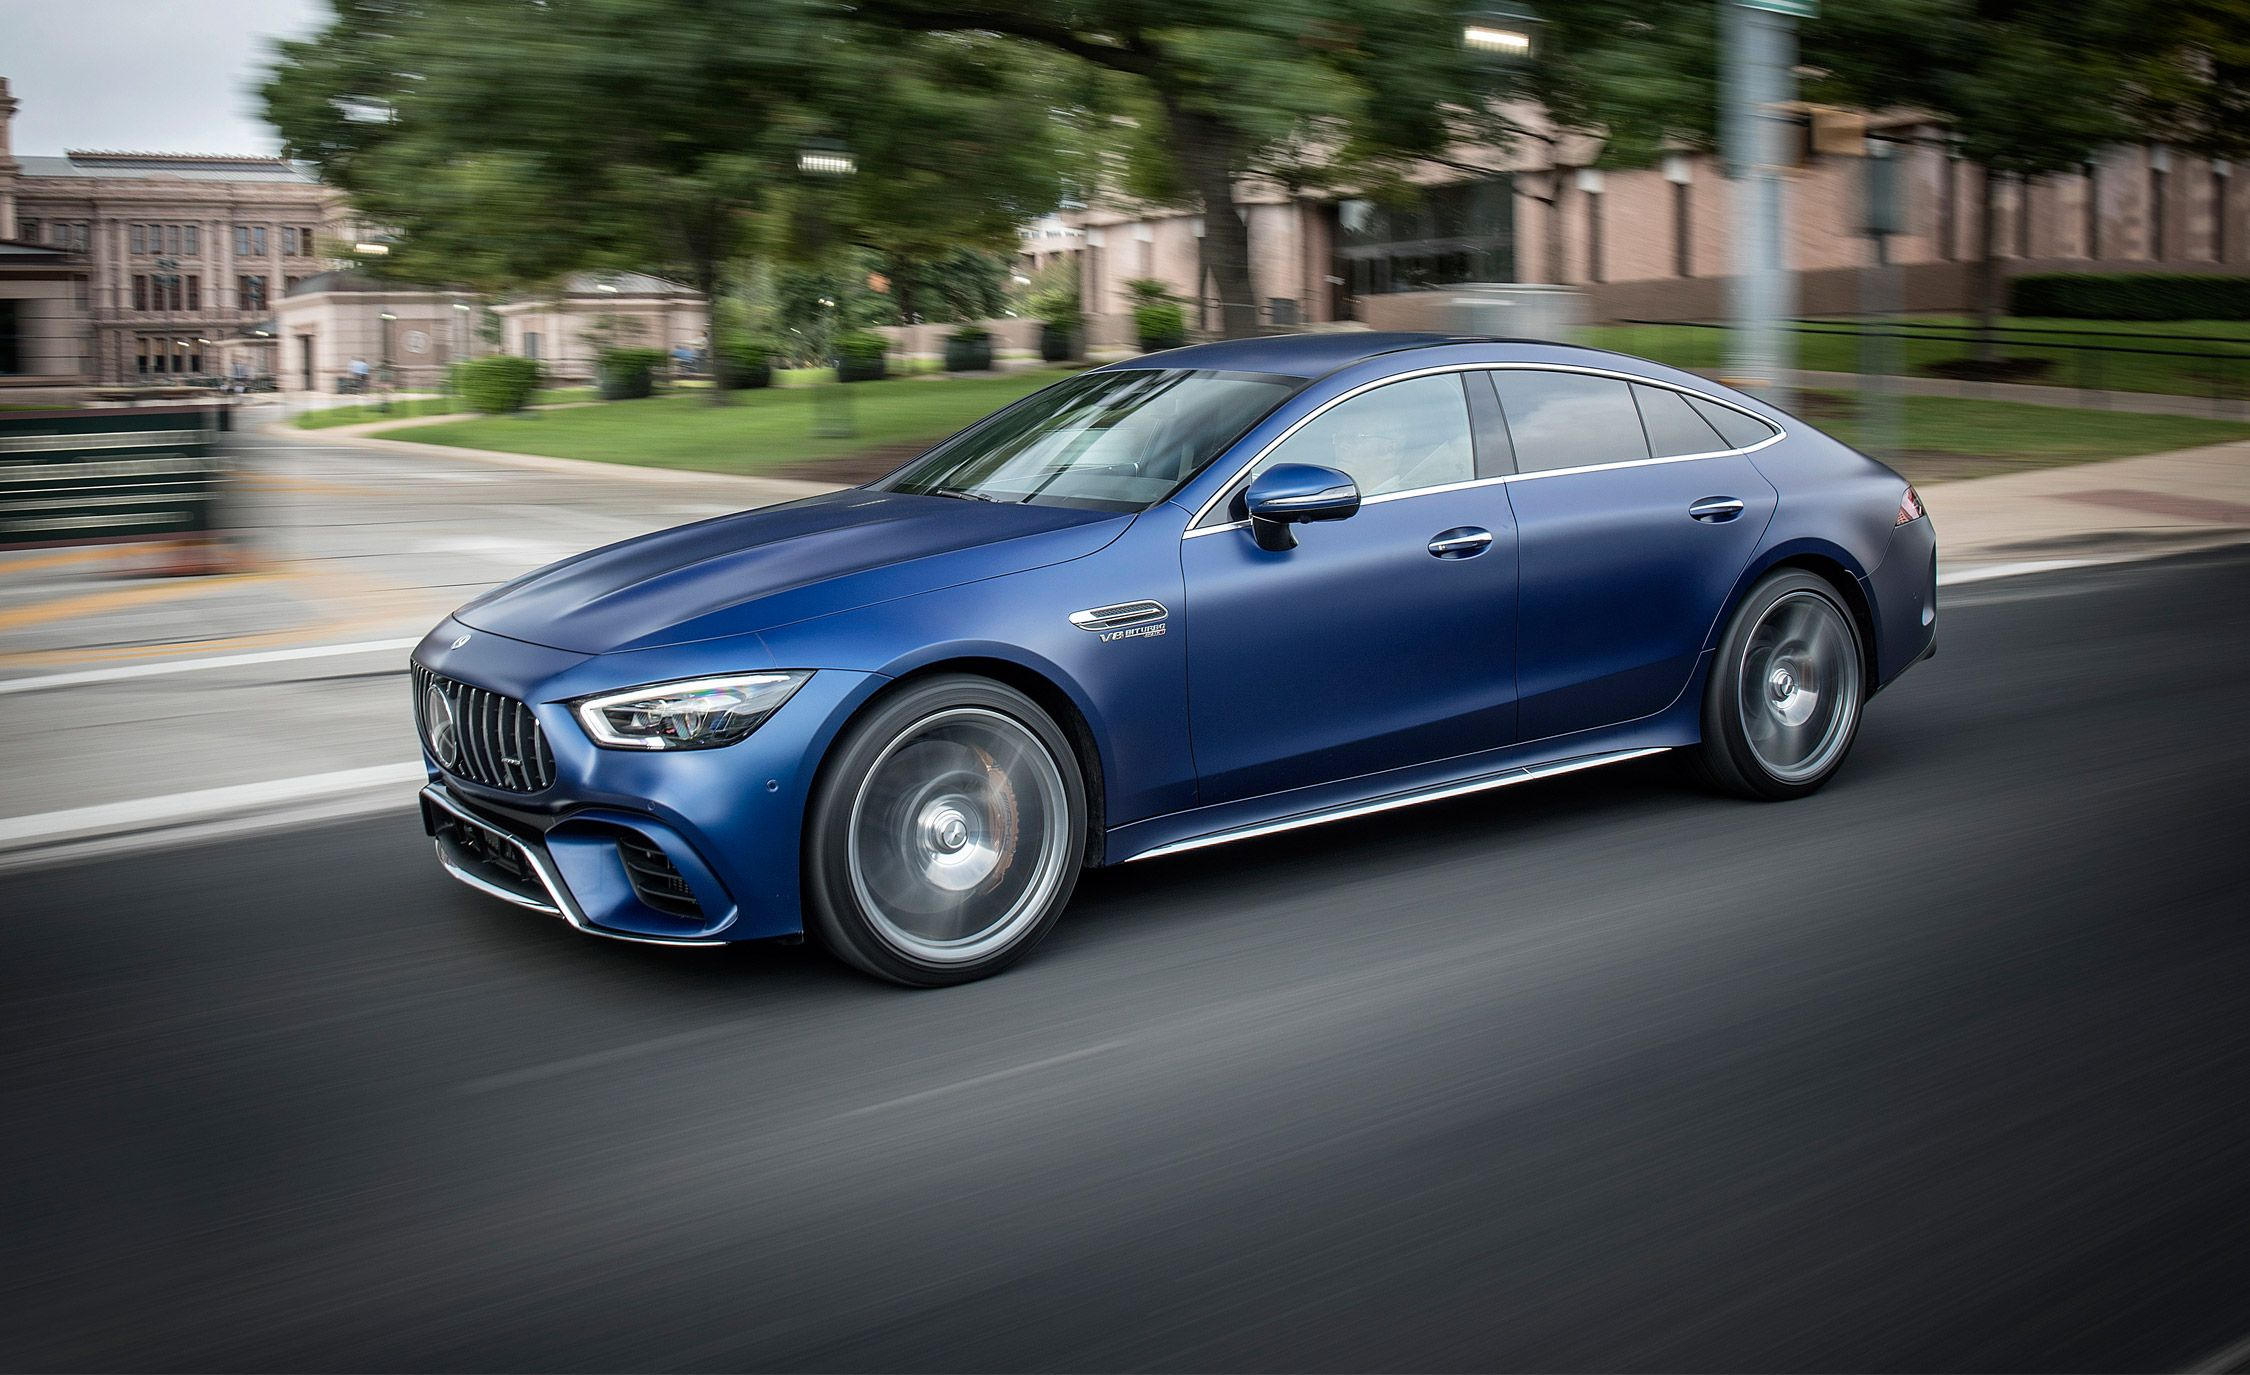 2019 Mercedes Amg Gt 4 Door Is One Furiously Fast Sedan Testers Test Leads Car Auto Power Electric Circuit Tester